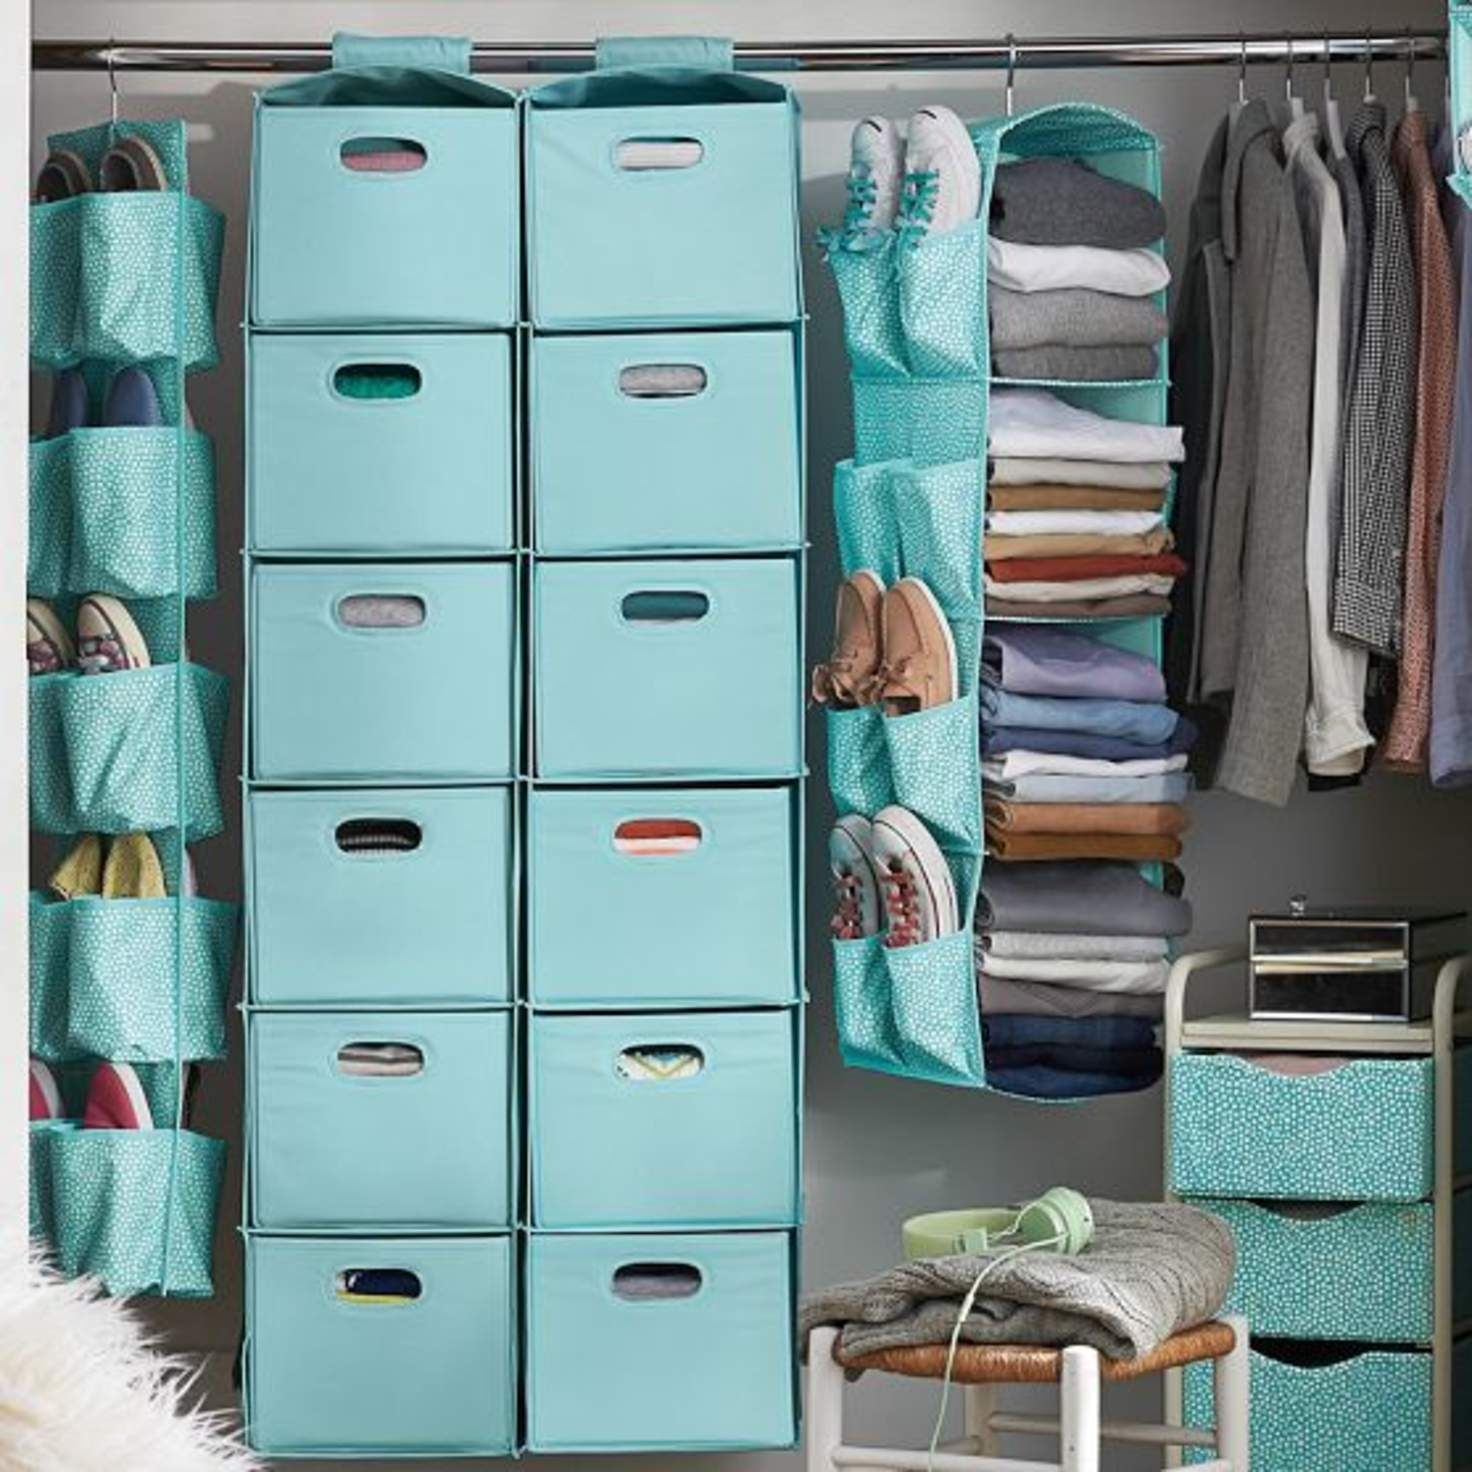 organizer closet hanging roselawnlutheran pics design elegant shelving lovely organizers of drawers captivating with home units